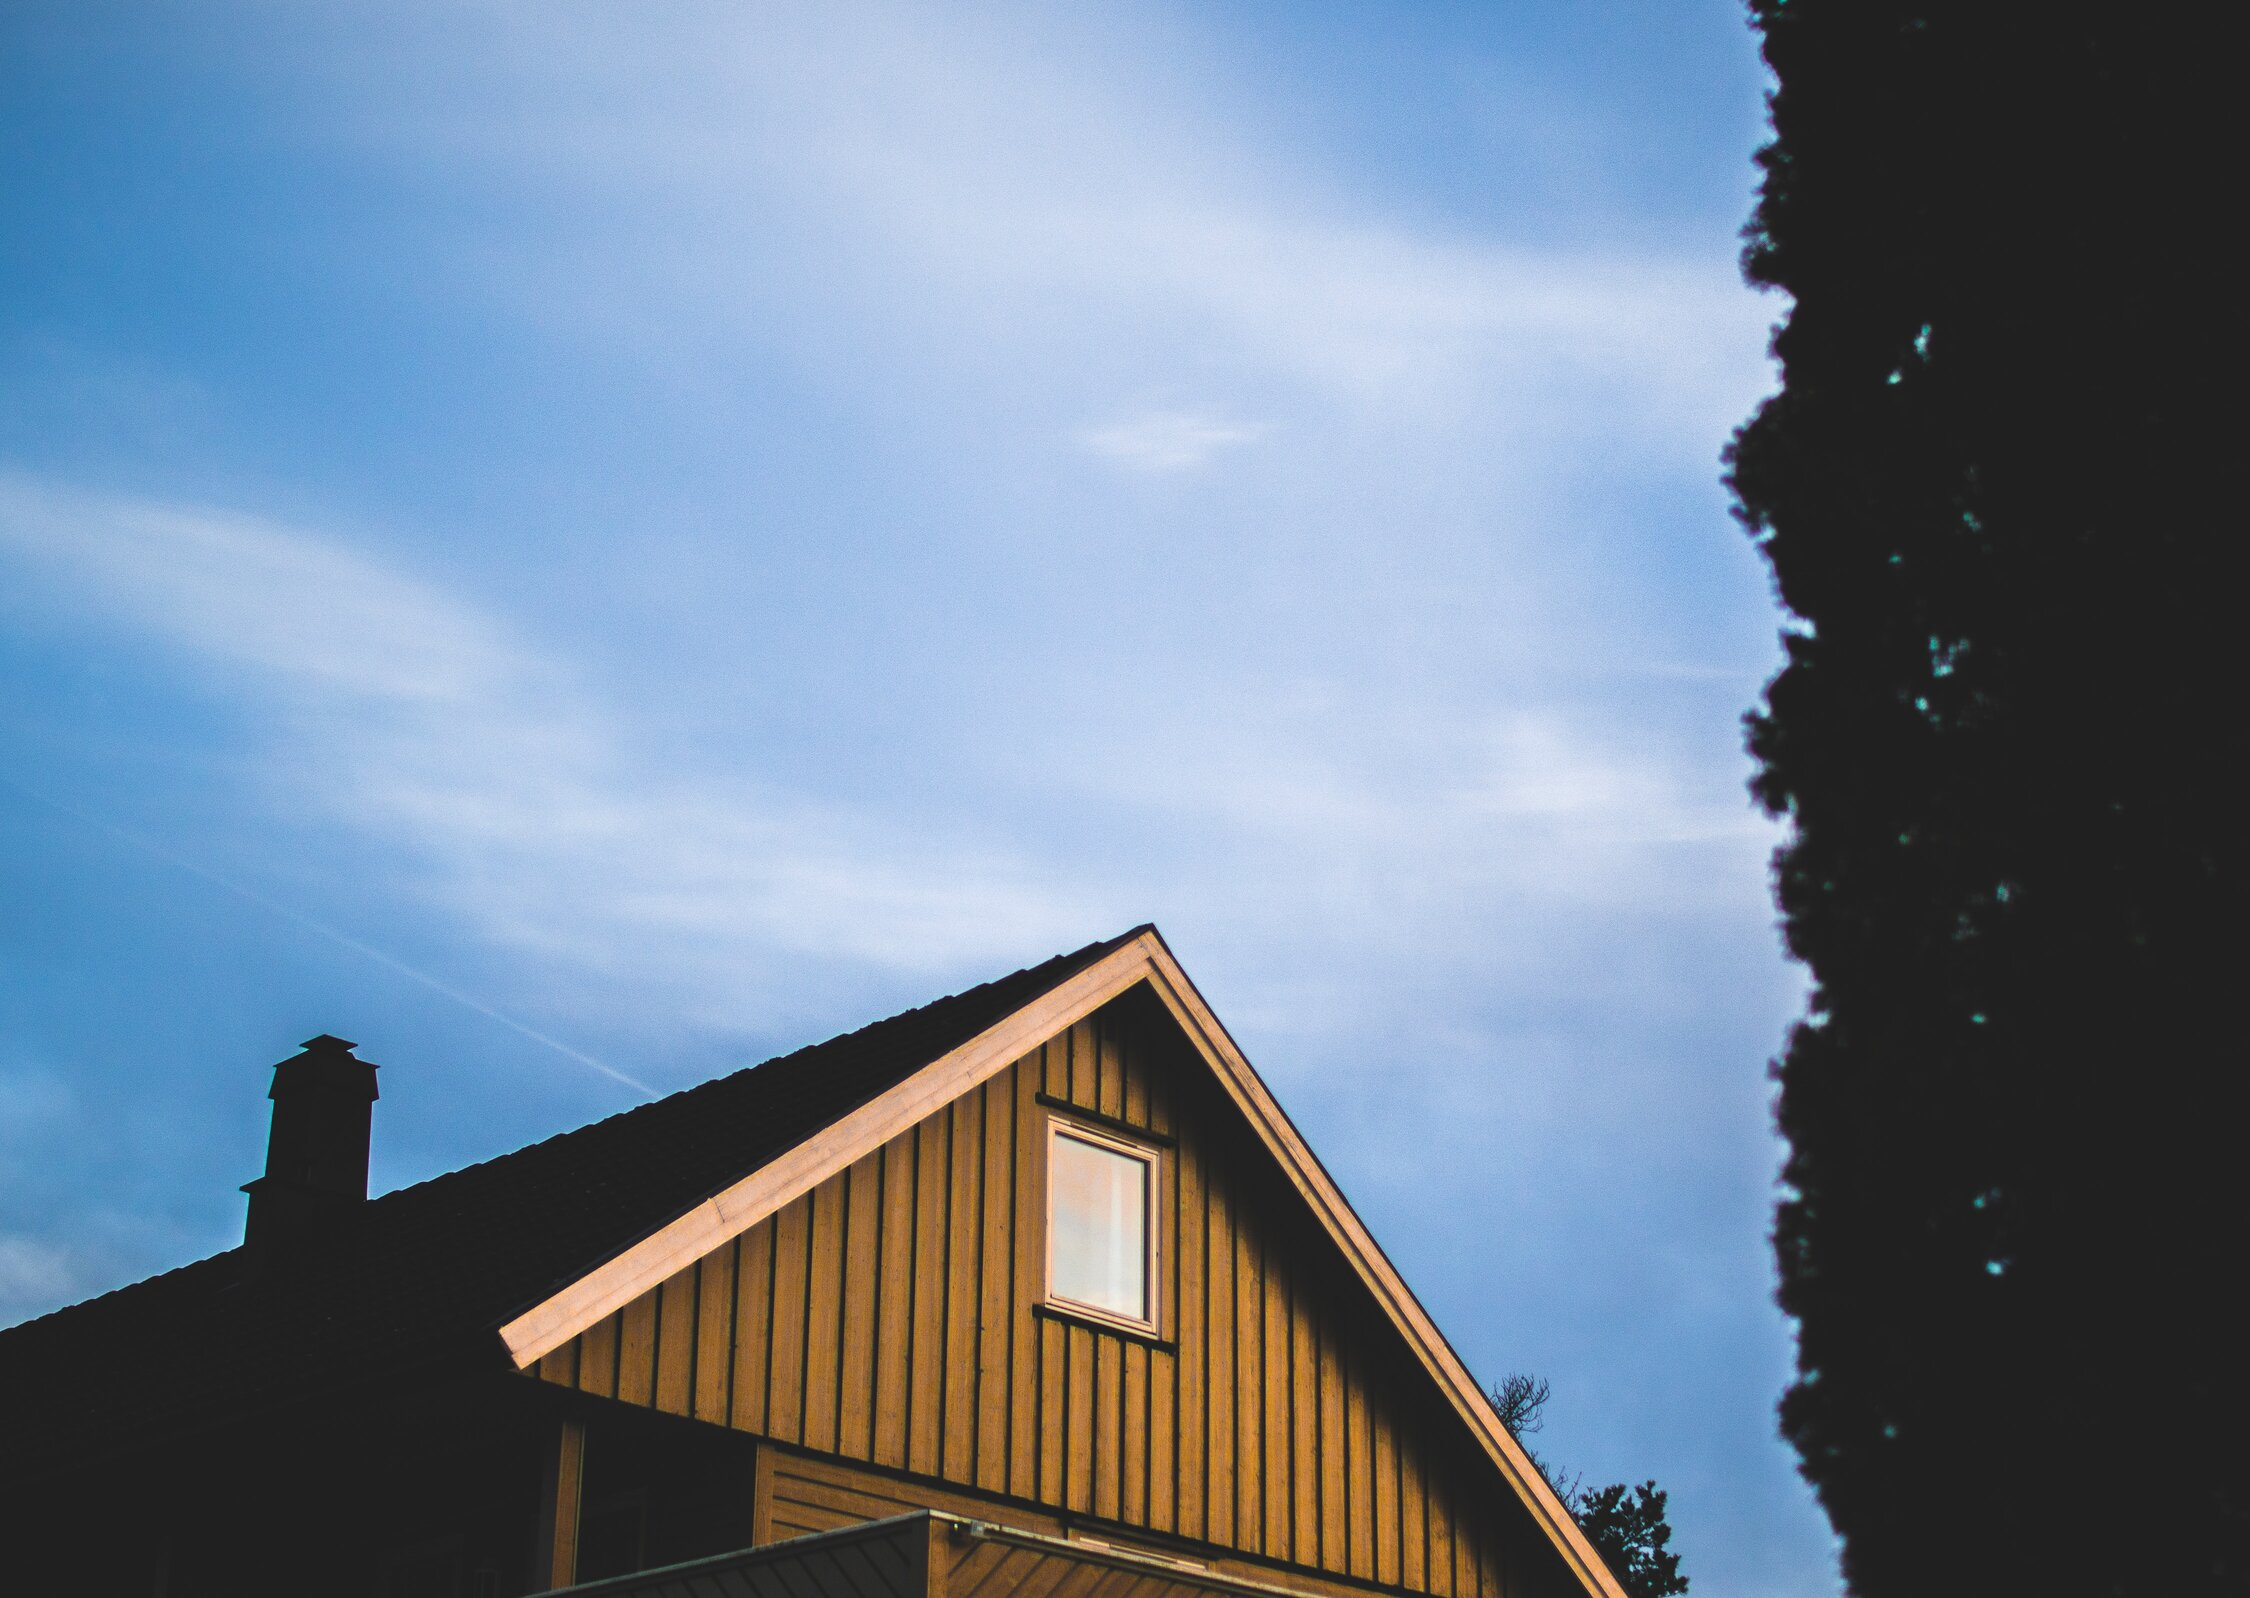 5 Tips to Get a Timeless Roof Style for Your Home